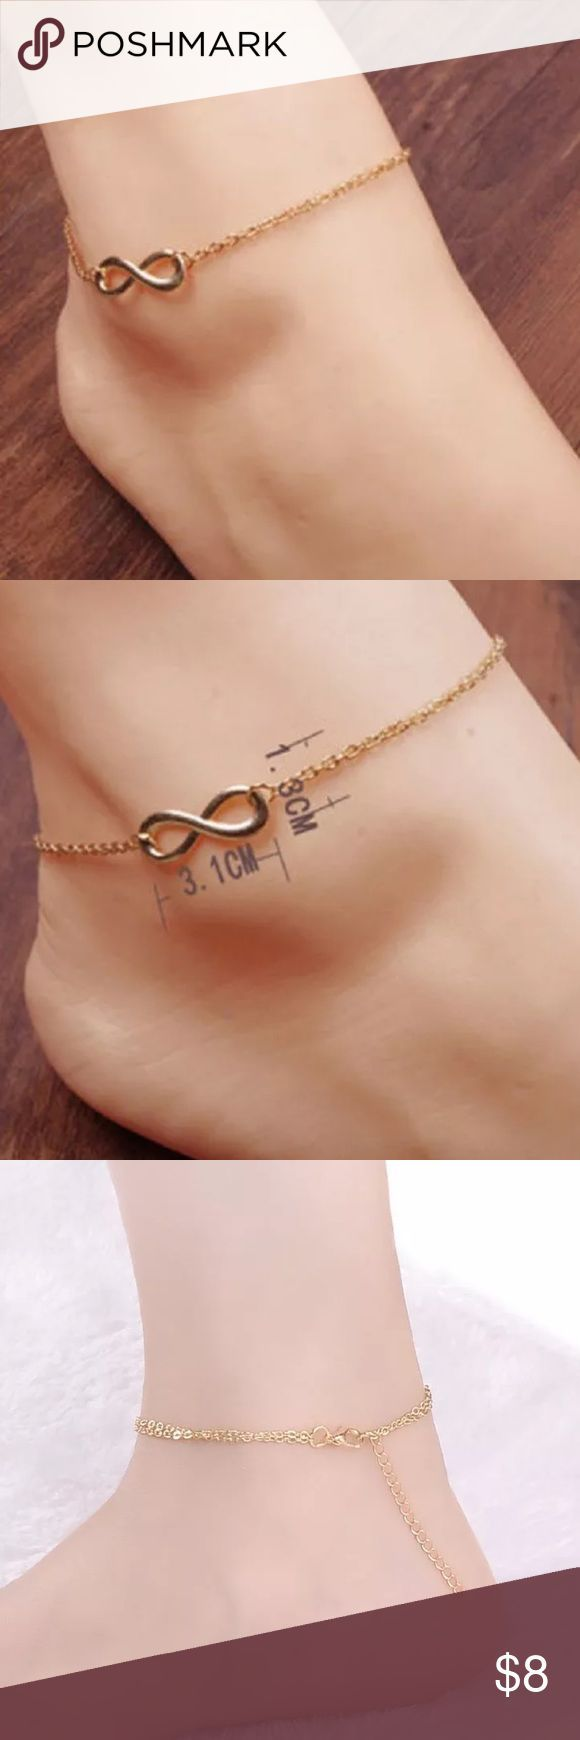 ankle sign bling chart size mini peace sterling silver bracelets bracelet adjustable anklet jewelry